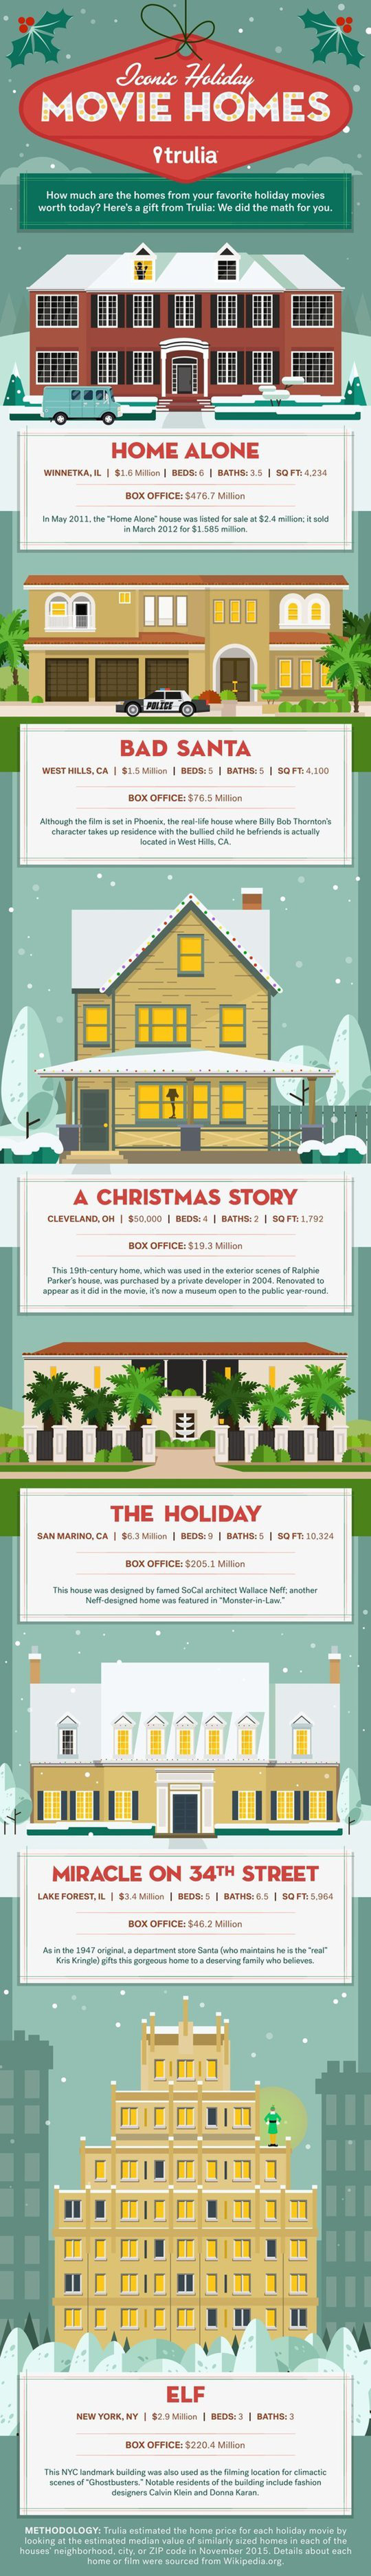 Iconic-Holiday-Movie-Homes-11-23-Infographic[2]